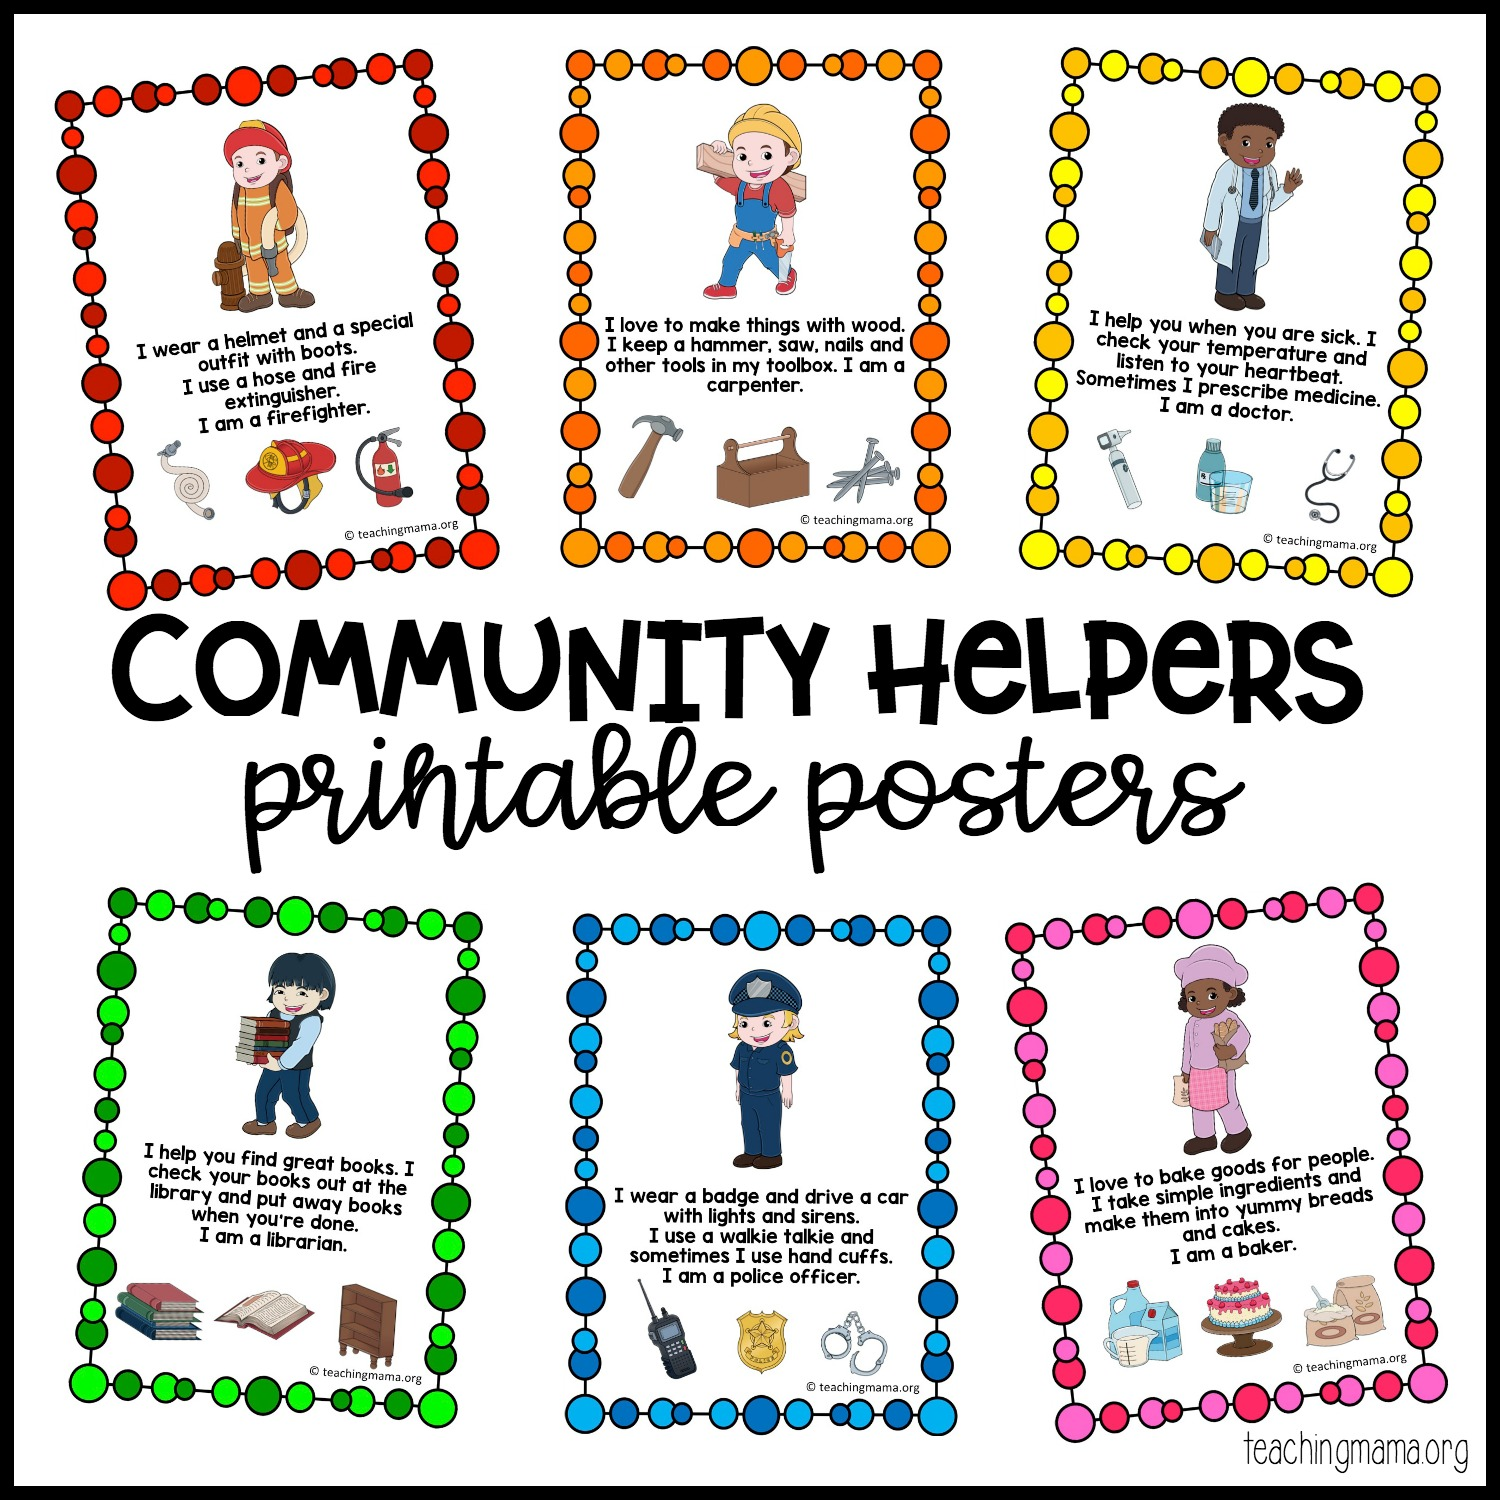 image relating to Printable Posters identify Local Helpers Printable Posters - Coaching Mama